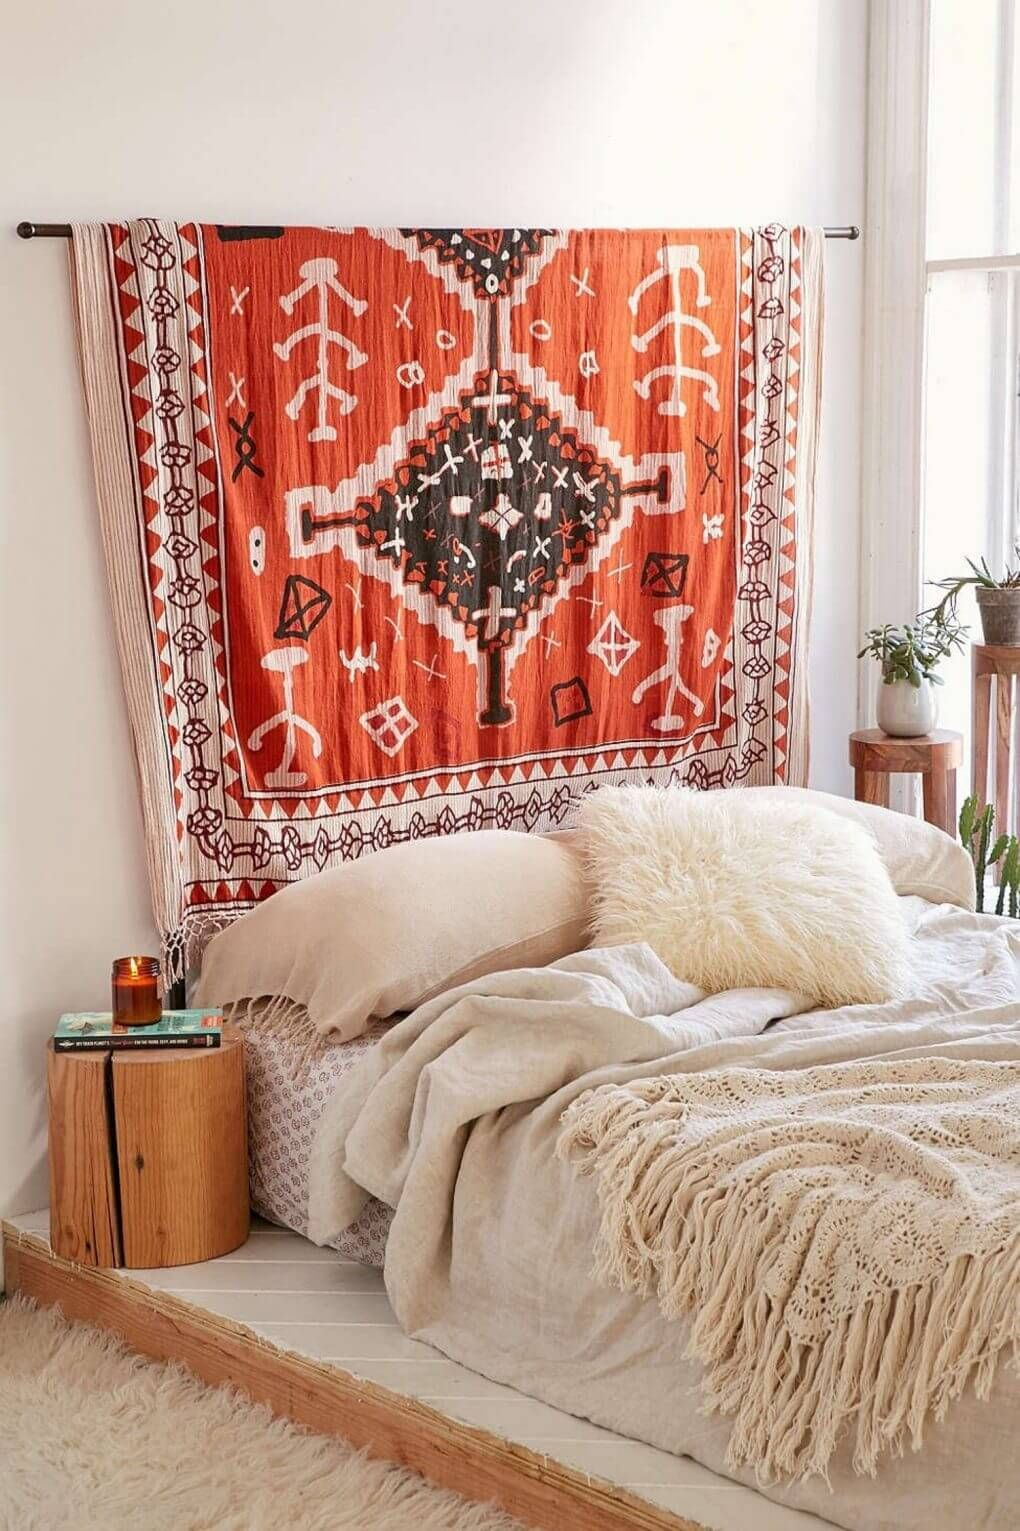 Minimal bedroom with leafy decor and  patterned rug above the bed bohemian chic interior design ideas farmfoodfamily homedecor also diy boho room living wallart rh pinterest